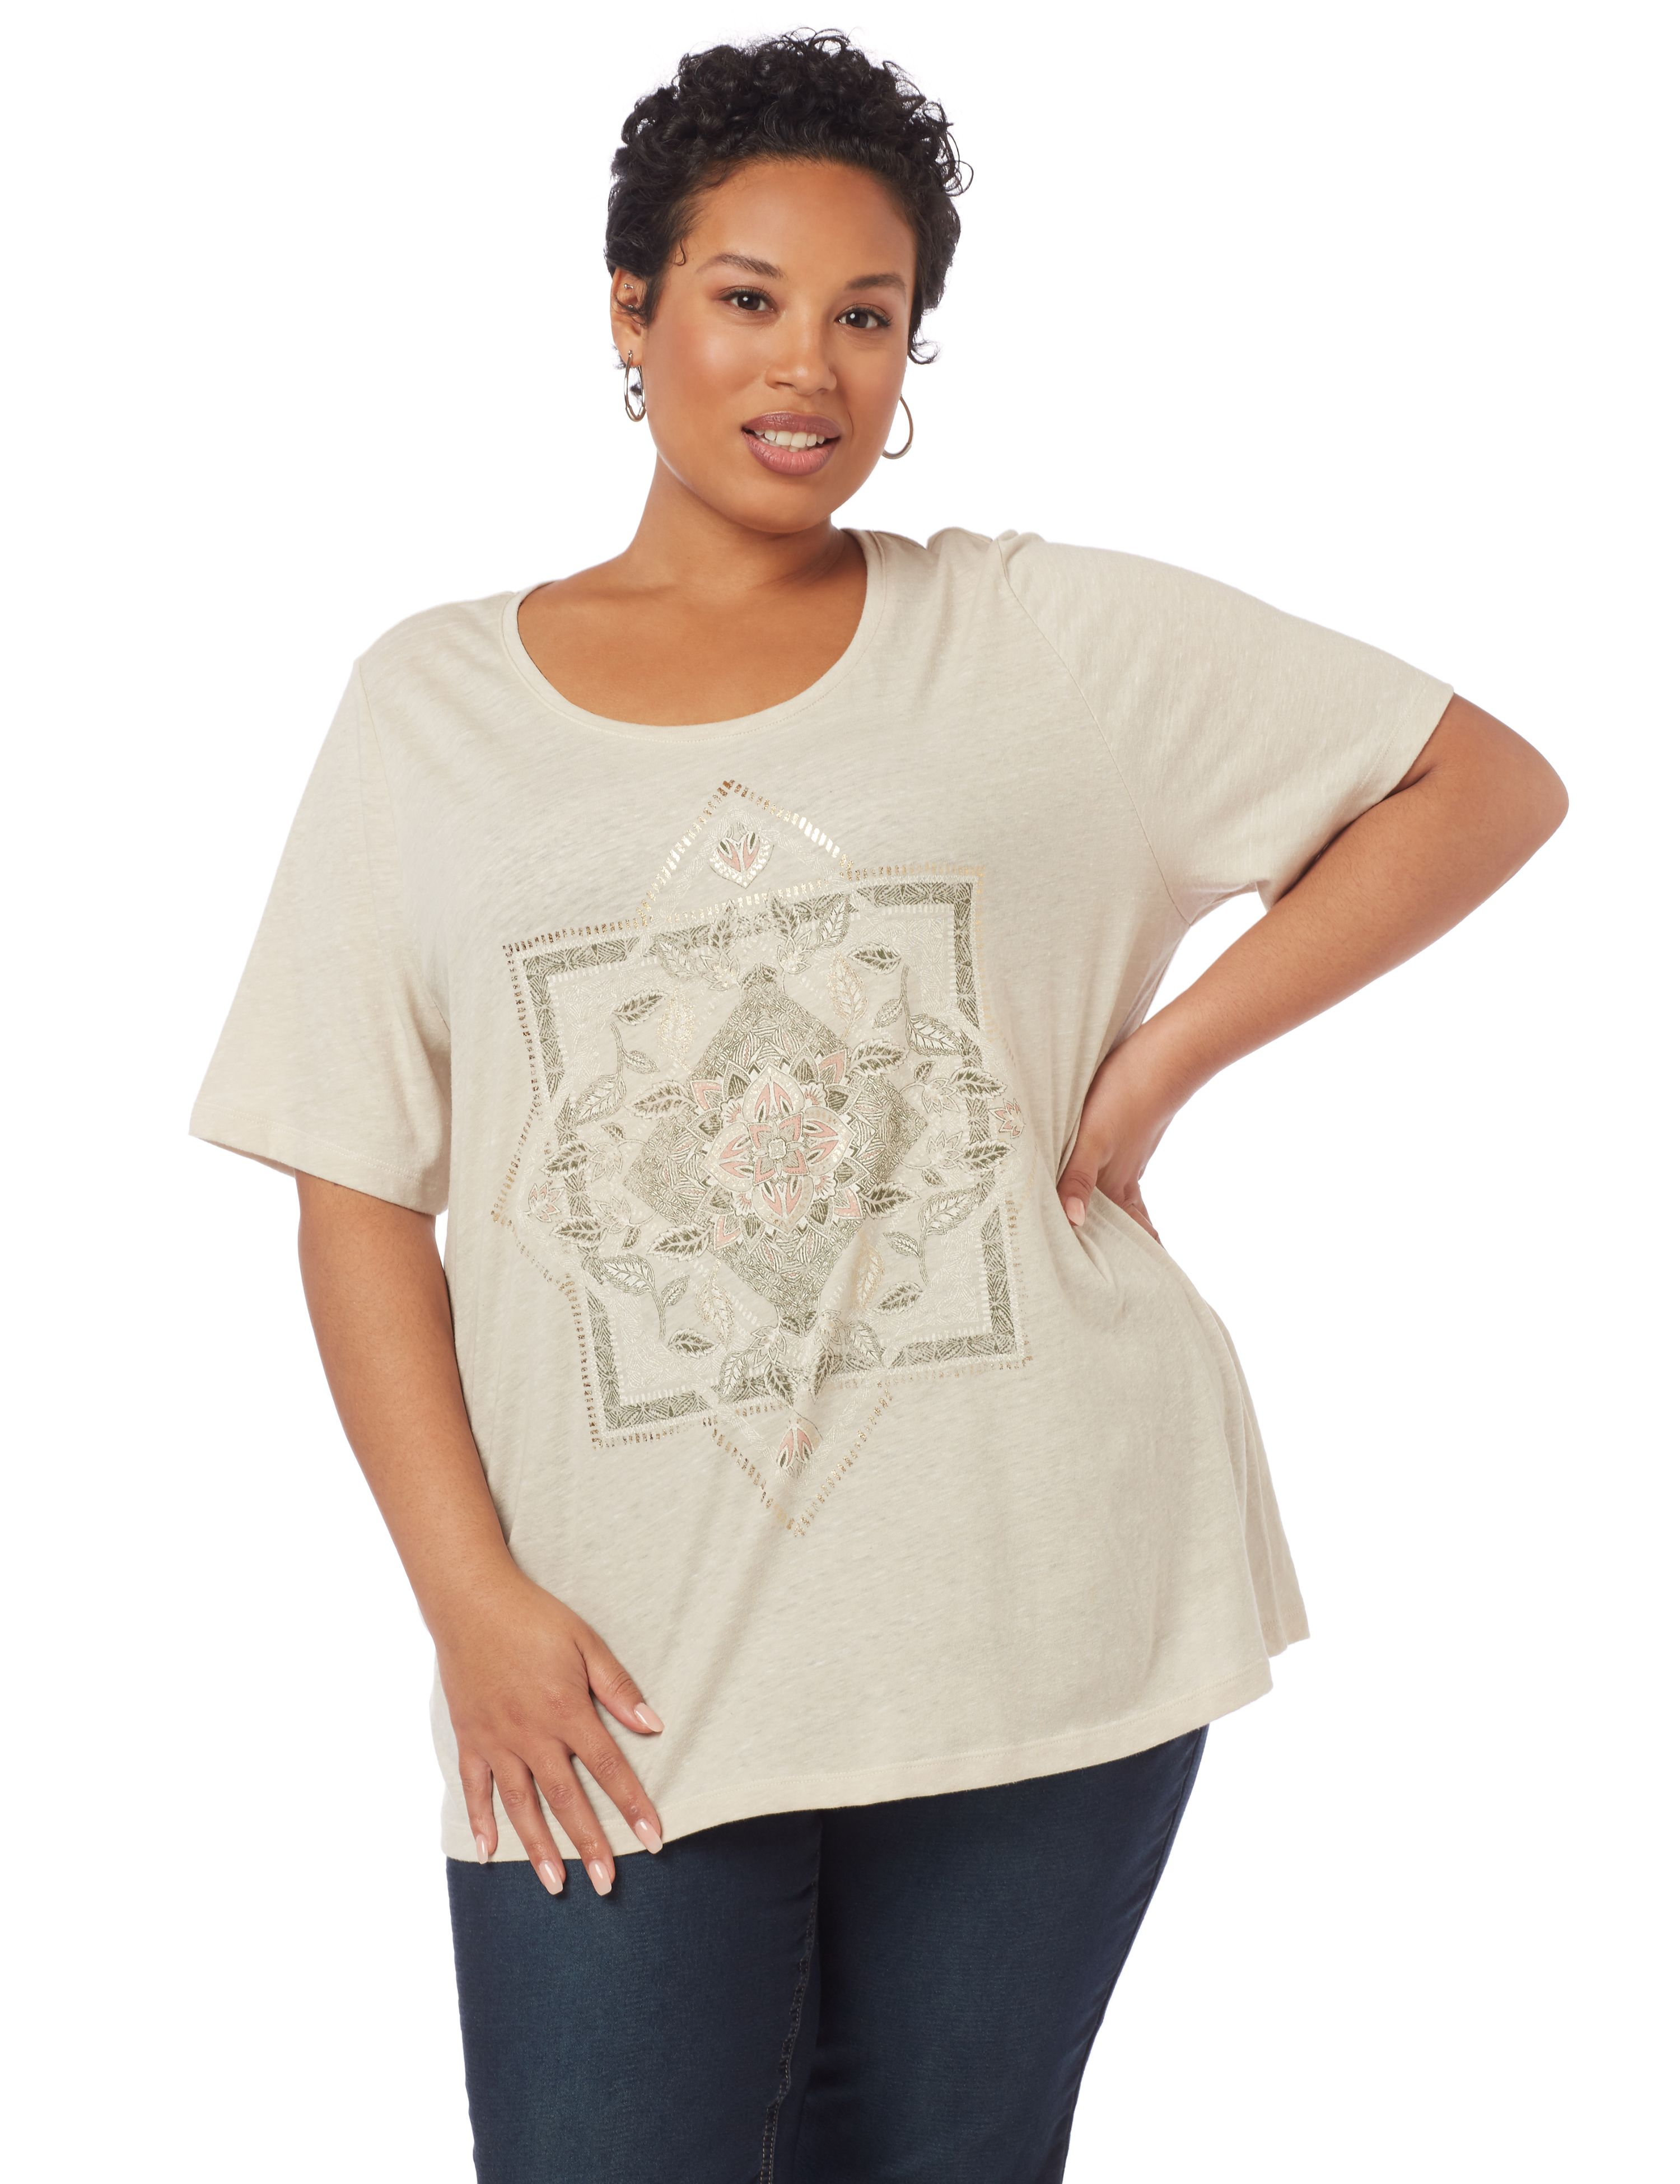 Stay Centered Short-Sleeve Top 1087879 SS SQUARE/TRIANGLE SCREEN MP-300094616